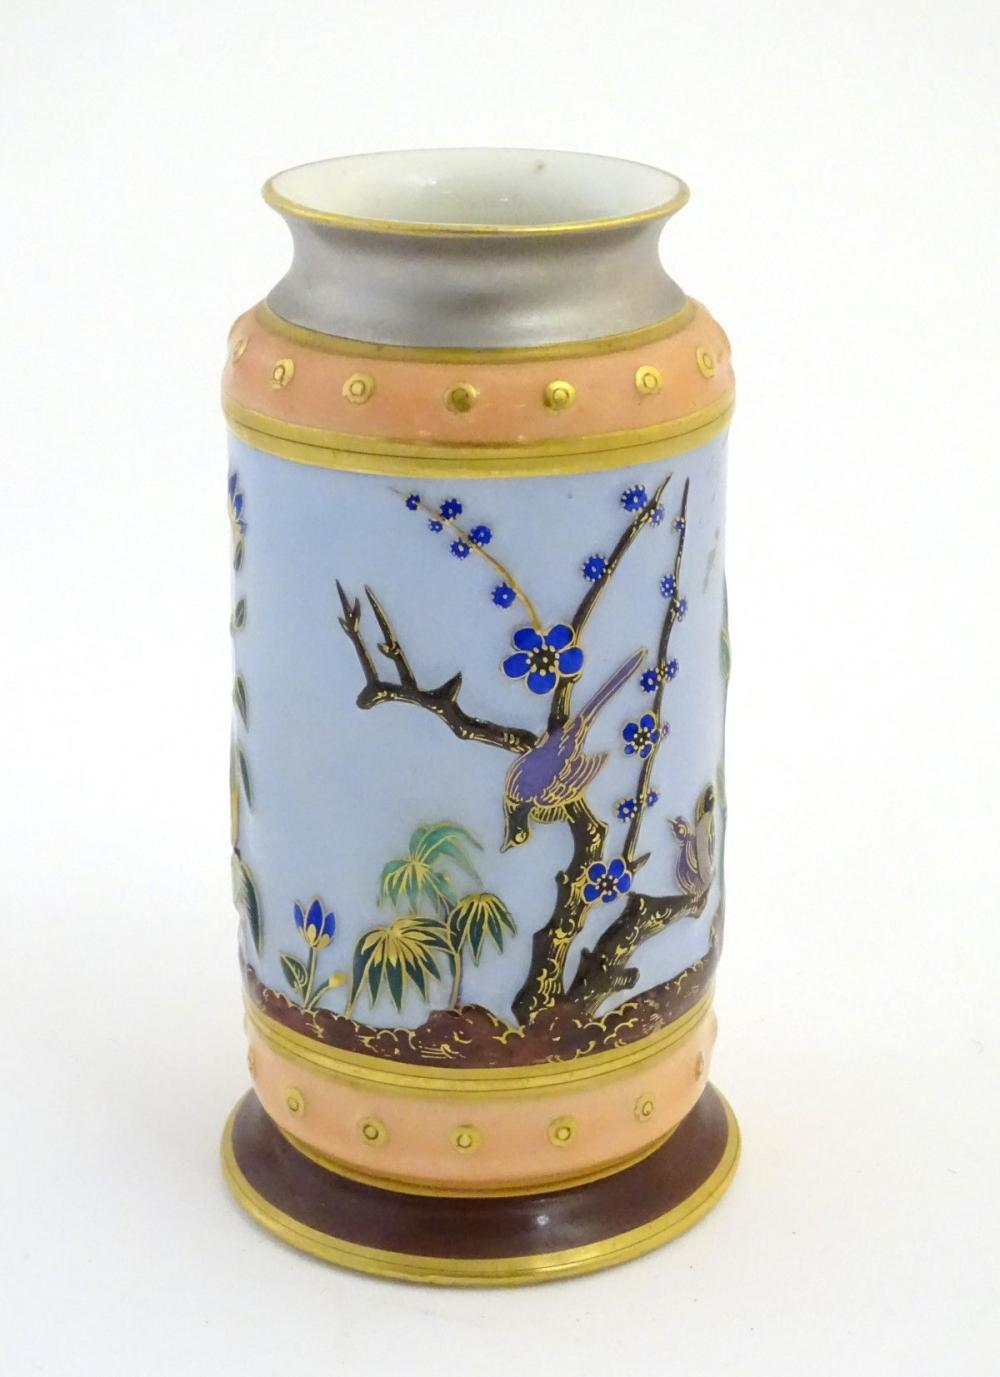 A continental vase decorated with birds and stylised flowers and plants. Marked D&T 2783 under. Appr